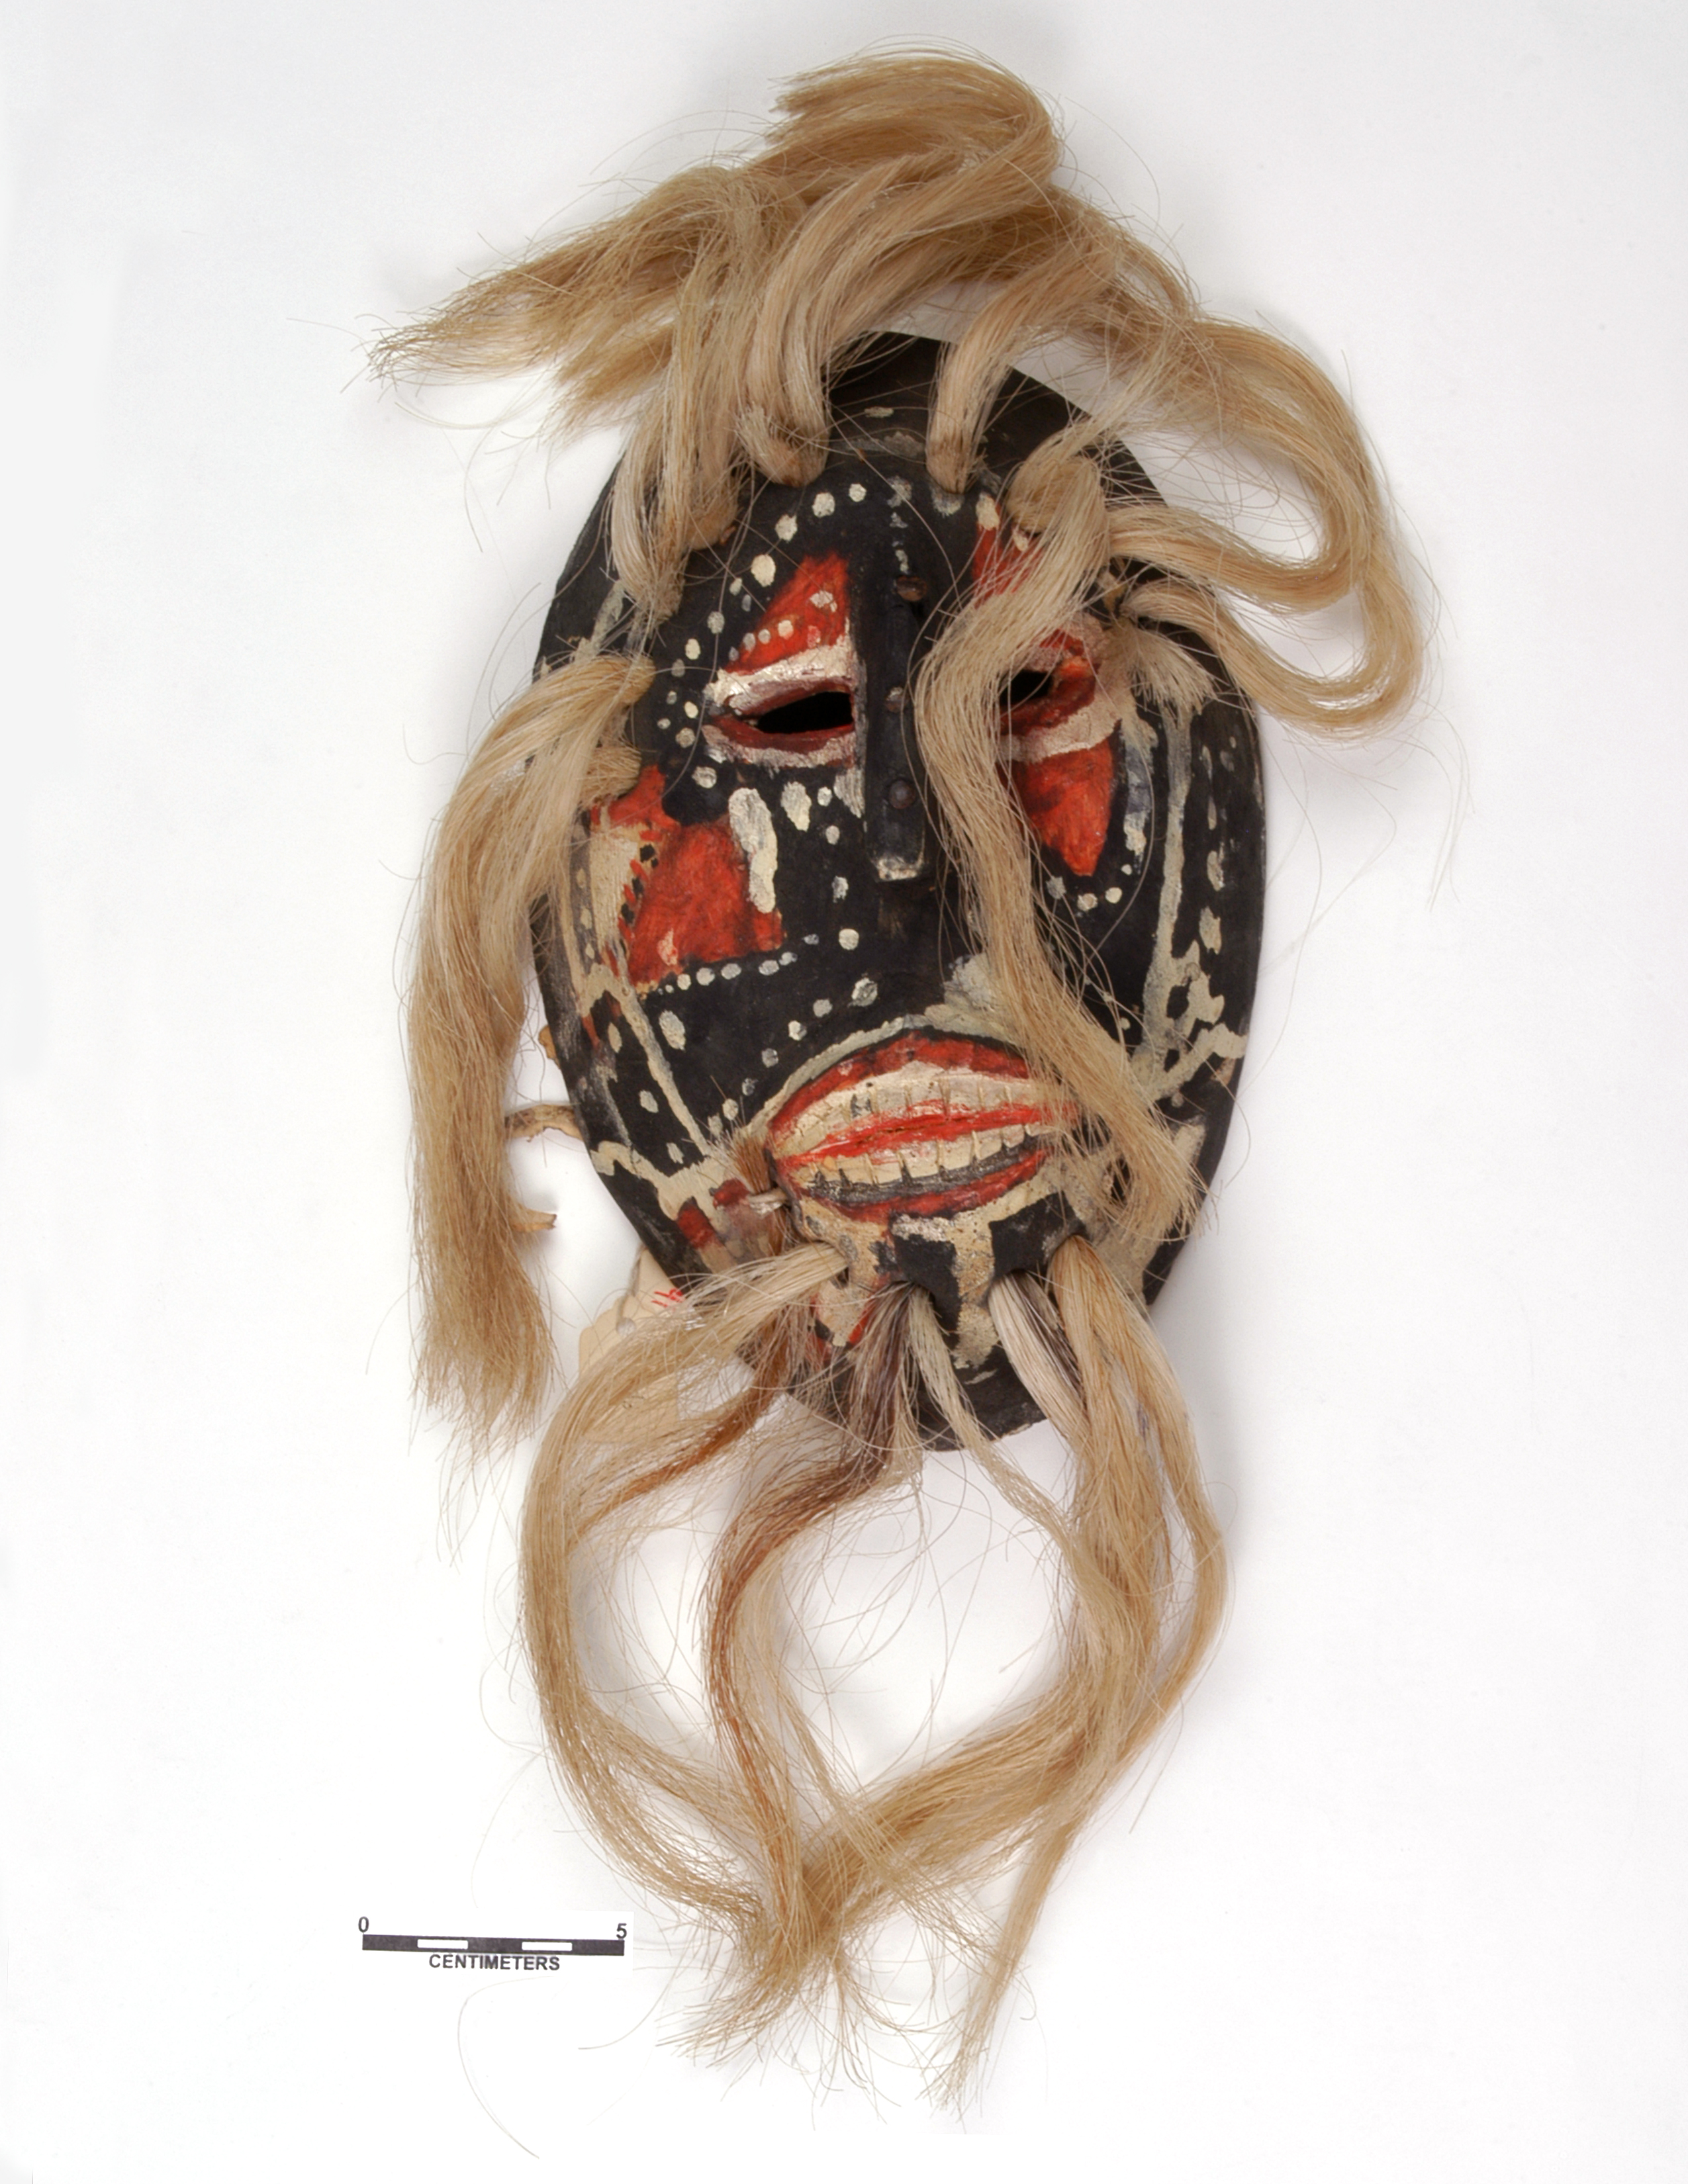 Maker: Brígido Moroyoki, Buaysiacobe; date made unknown, acquired 1965